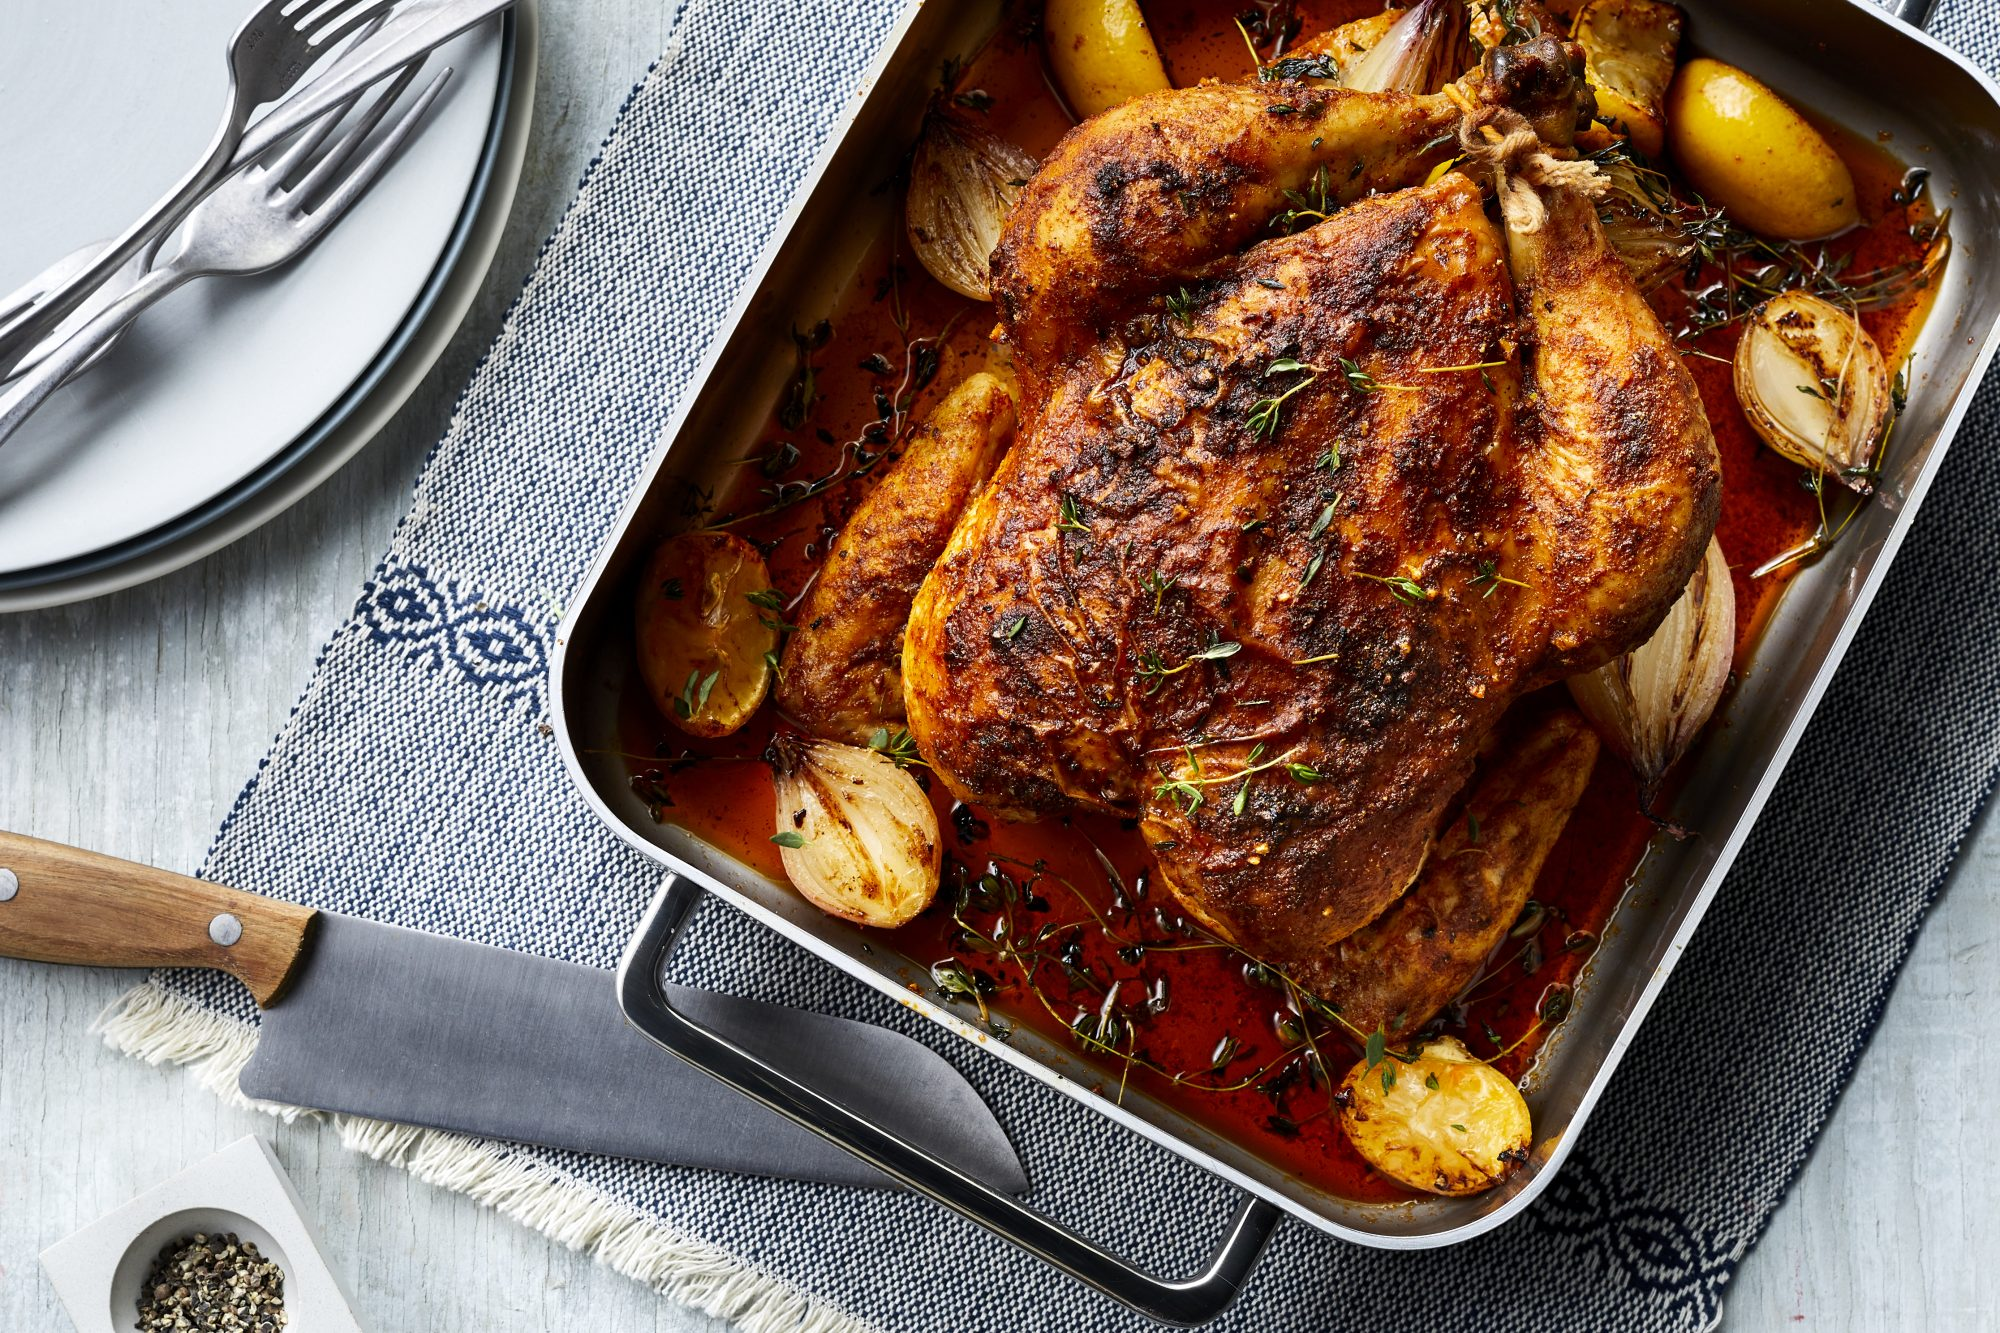 mr-classic-roast-chicken